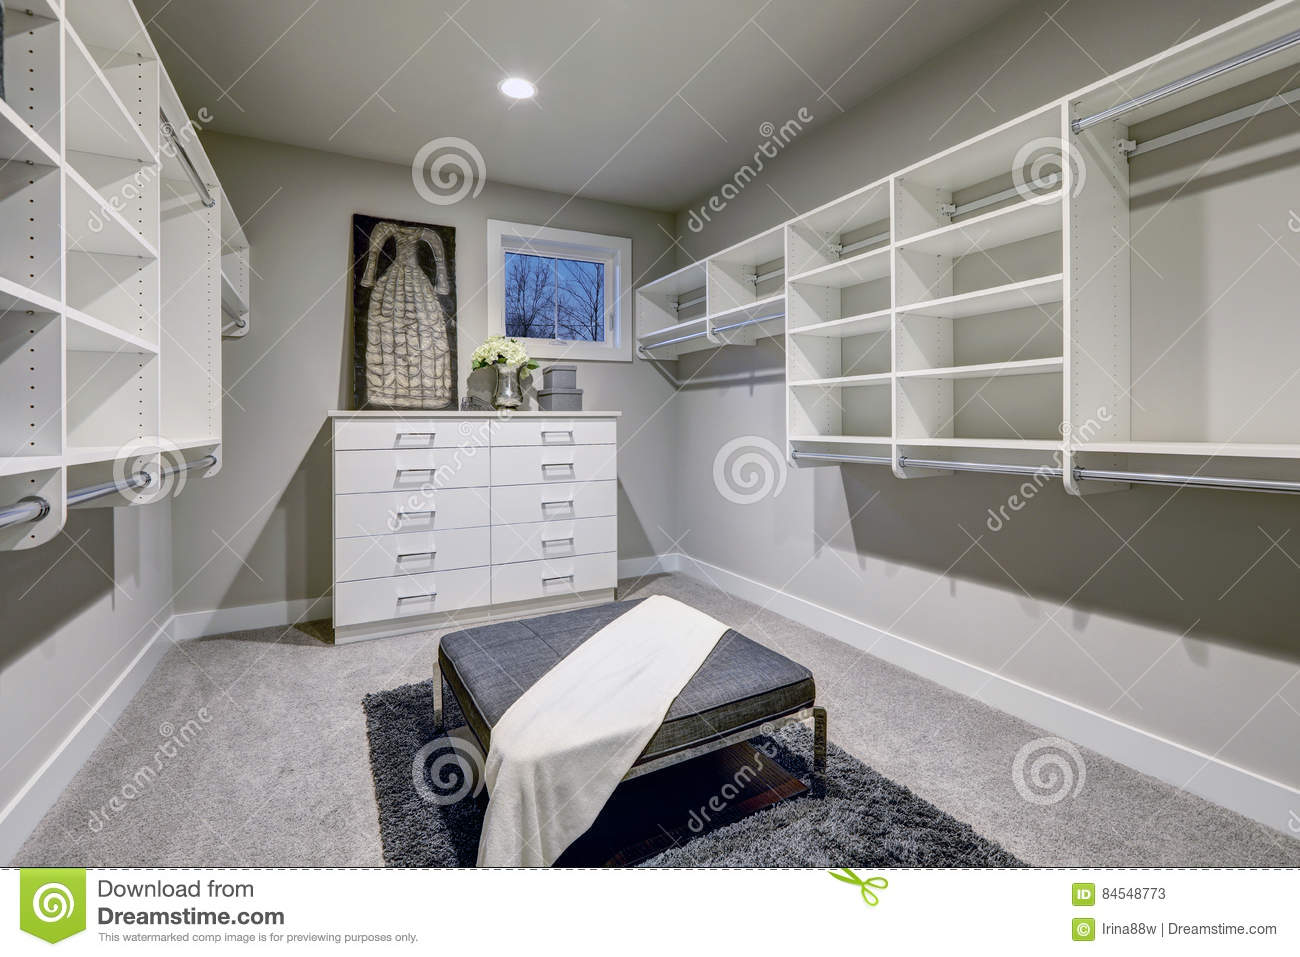 Huge Walk In Closet With Shelves, Drawers And Gray Bench.